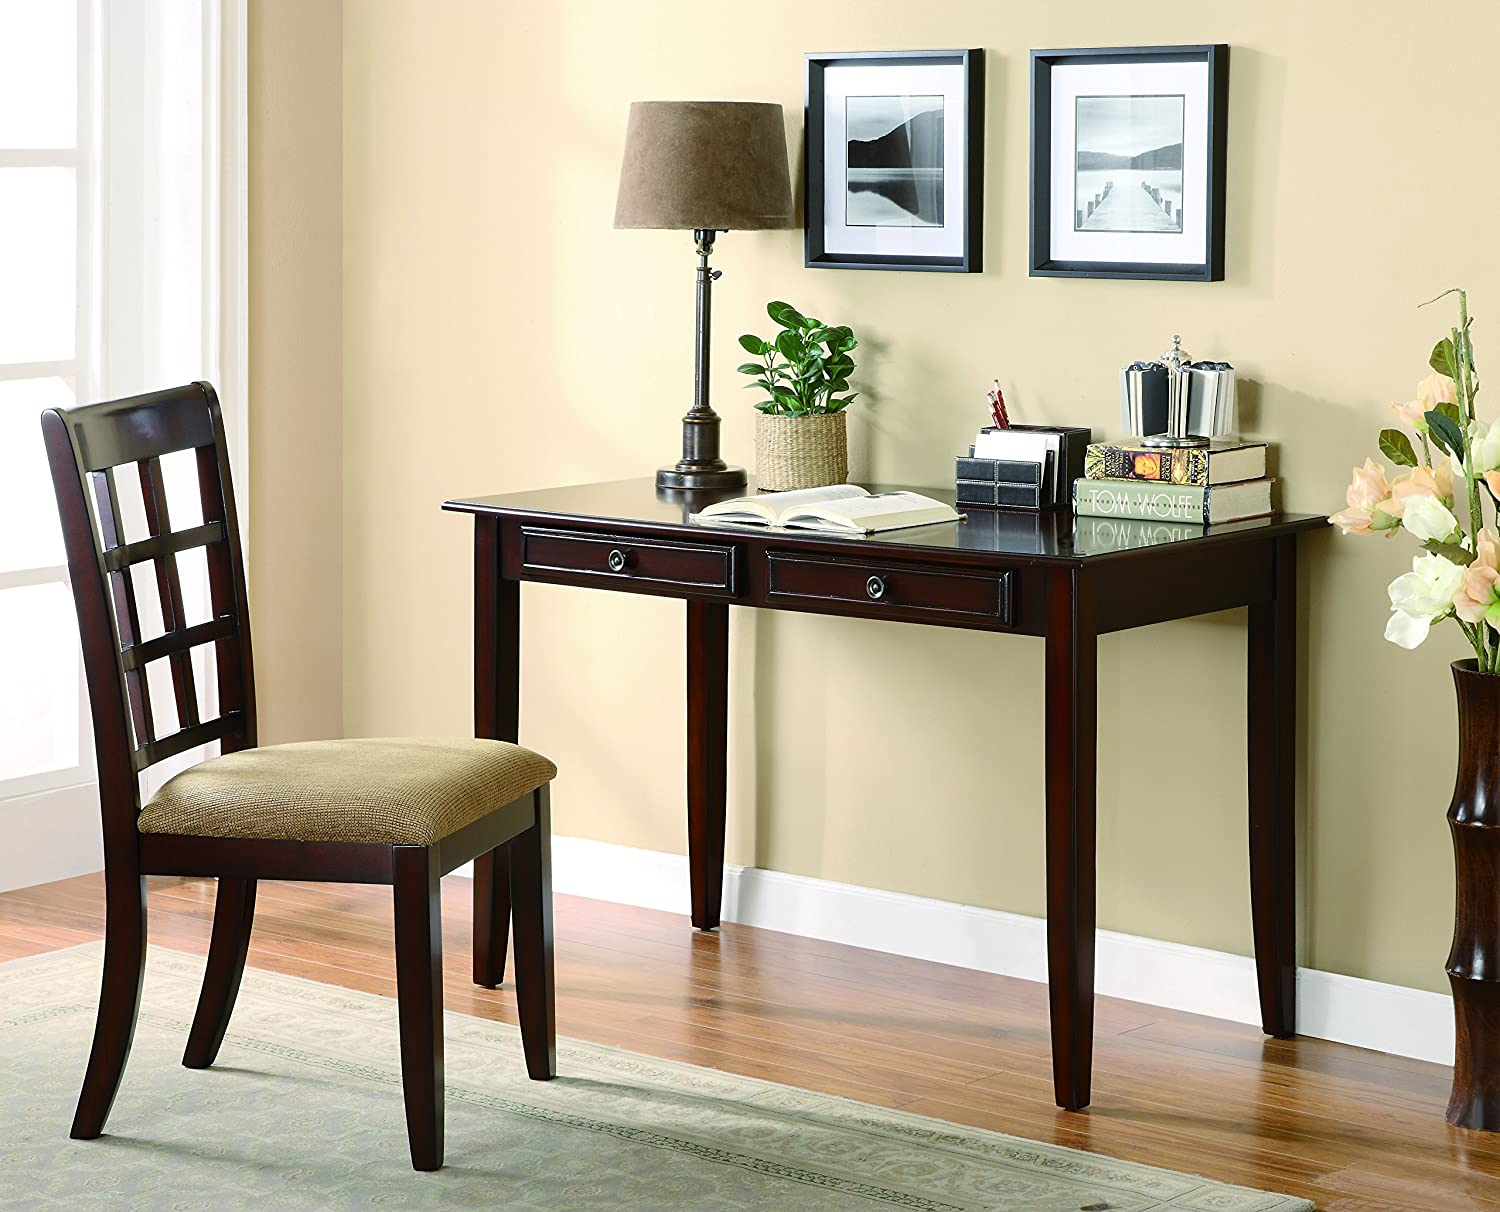 Coaster Home Furnishings -CO 2-Drawer Office Computer Writing Desk and Lattice-Back Chair Set with Fabric Upholstered Seat, Cherry